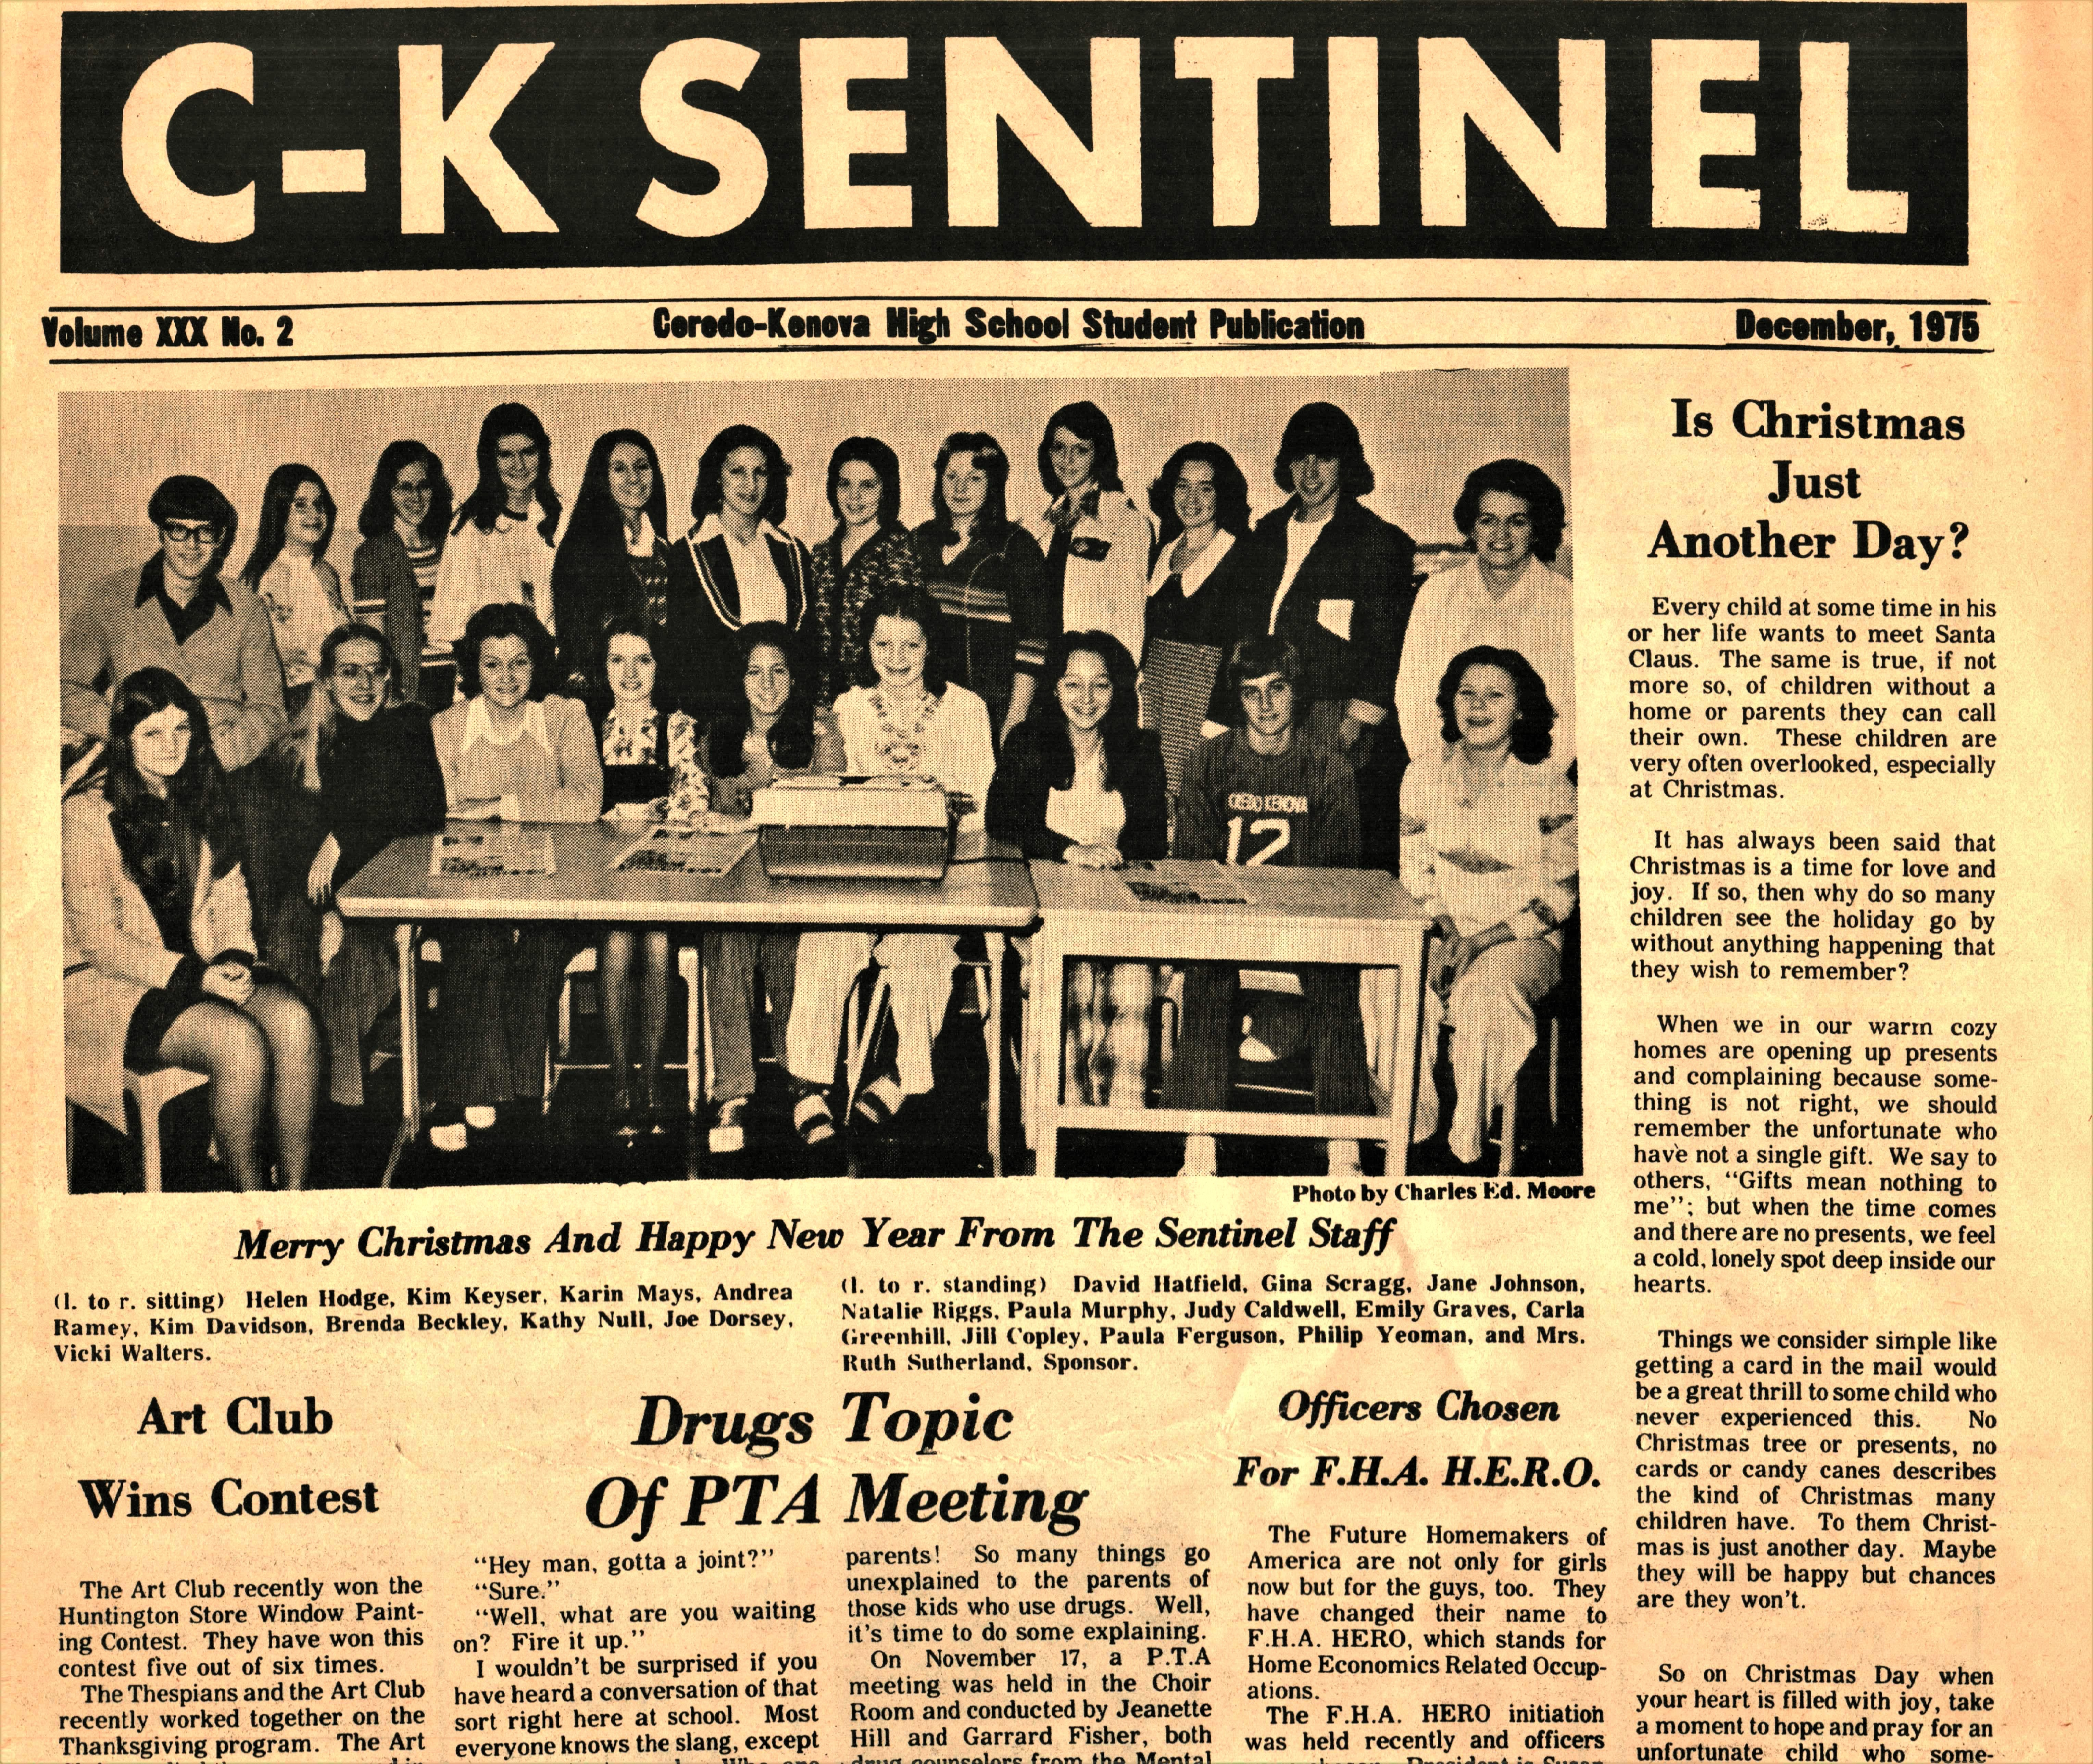 The school newspaper, The C-K Sentinel. Courtesy of the Ceredo Historical Society Museum.